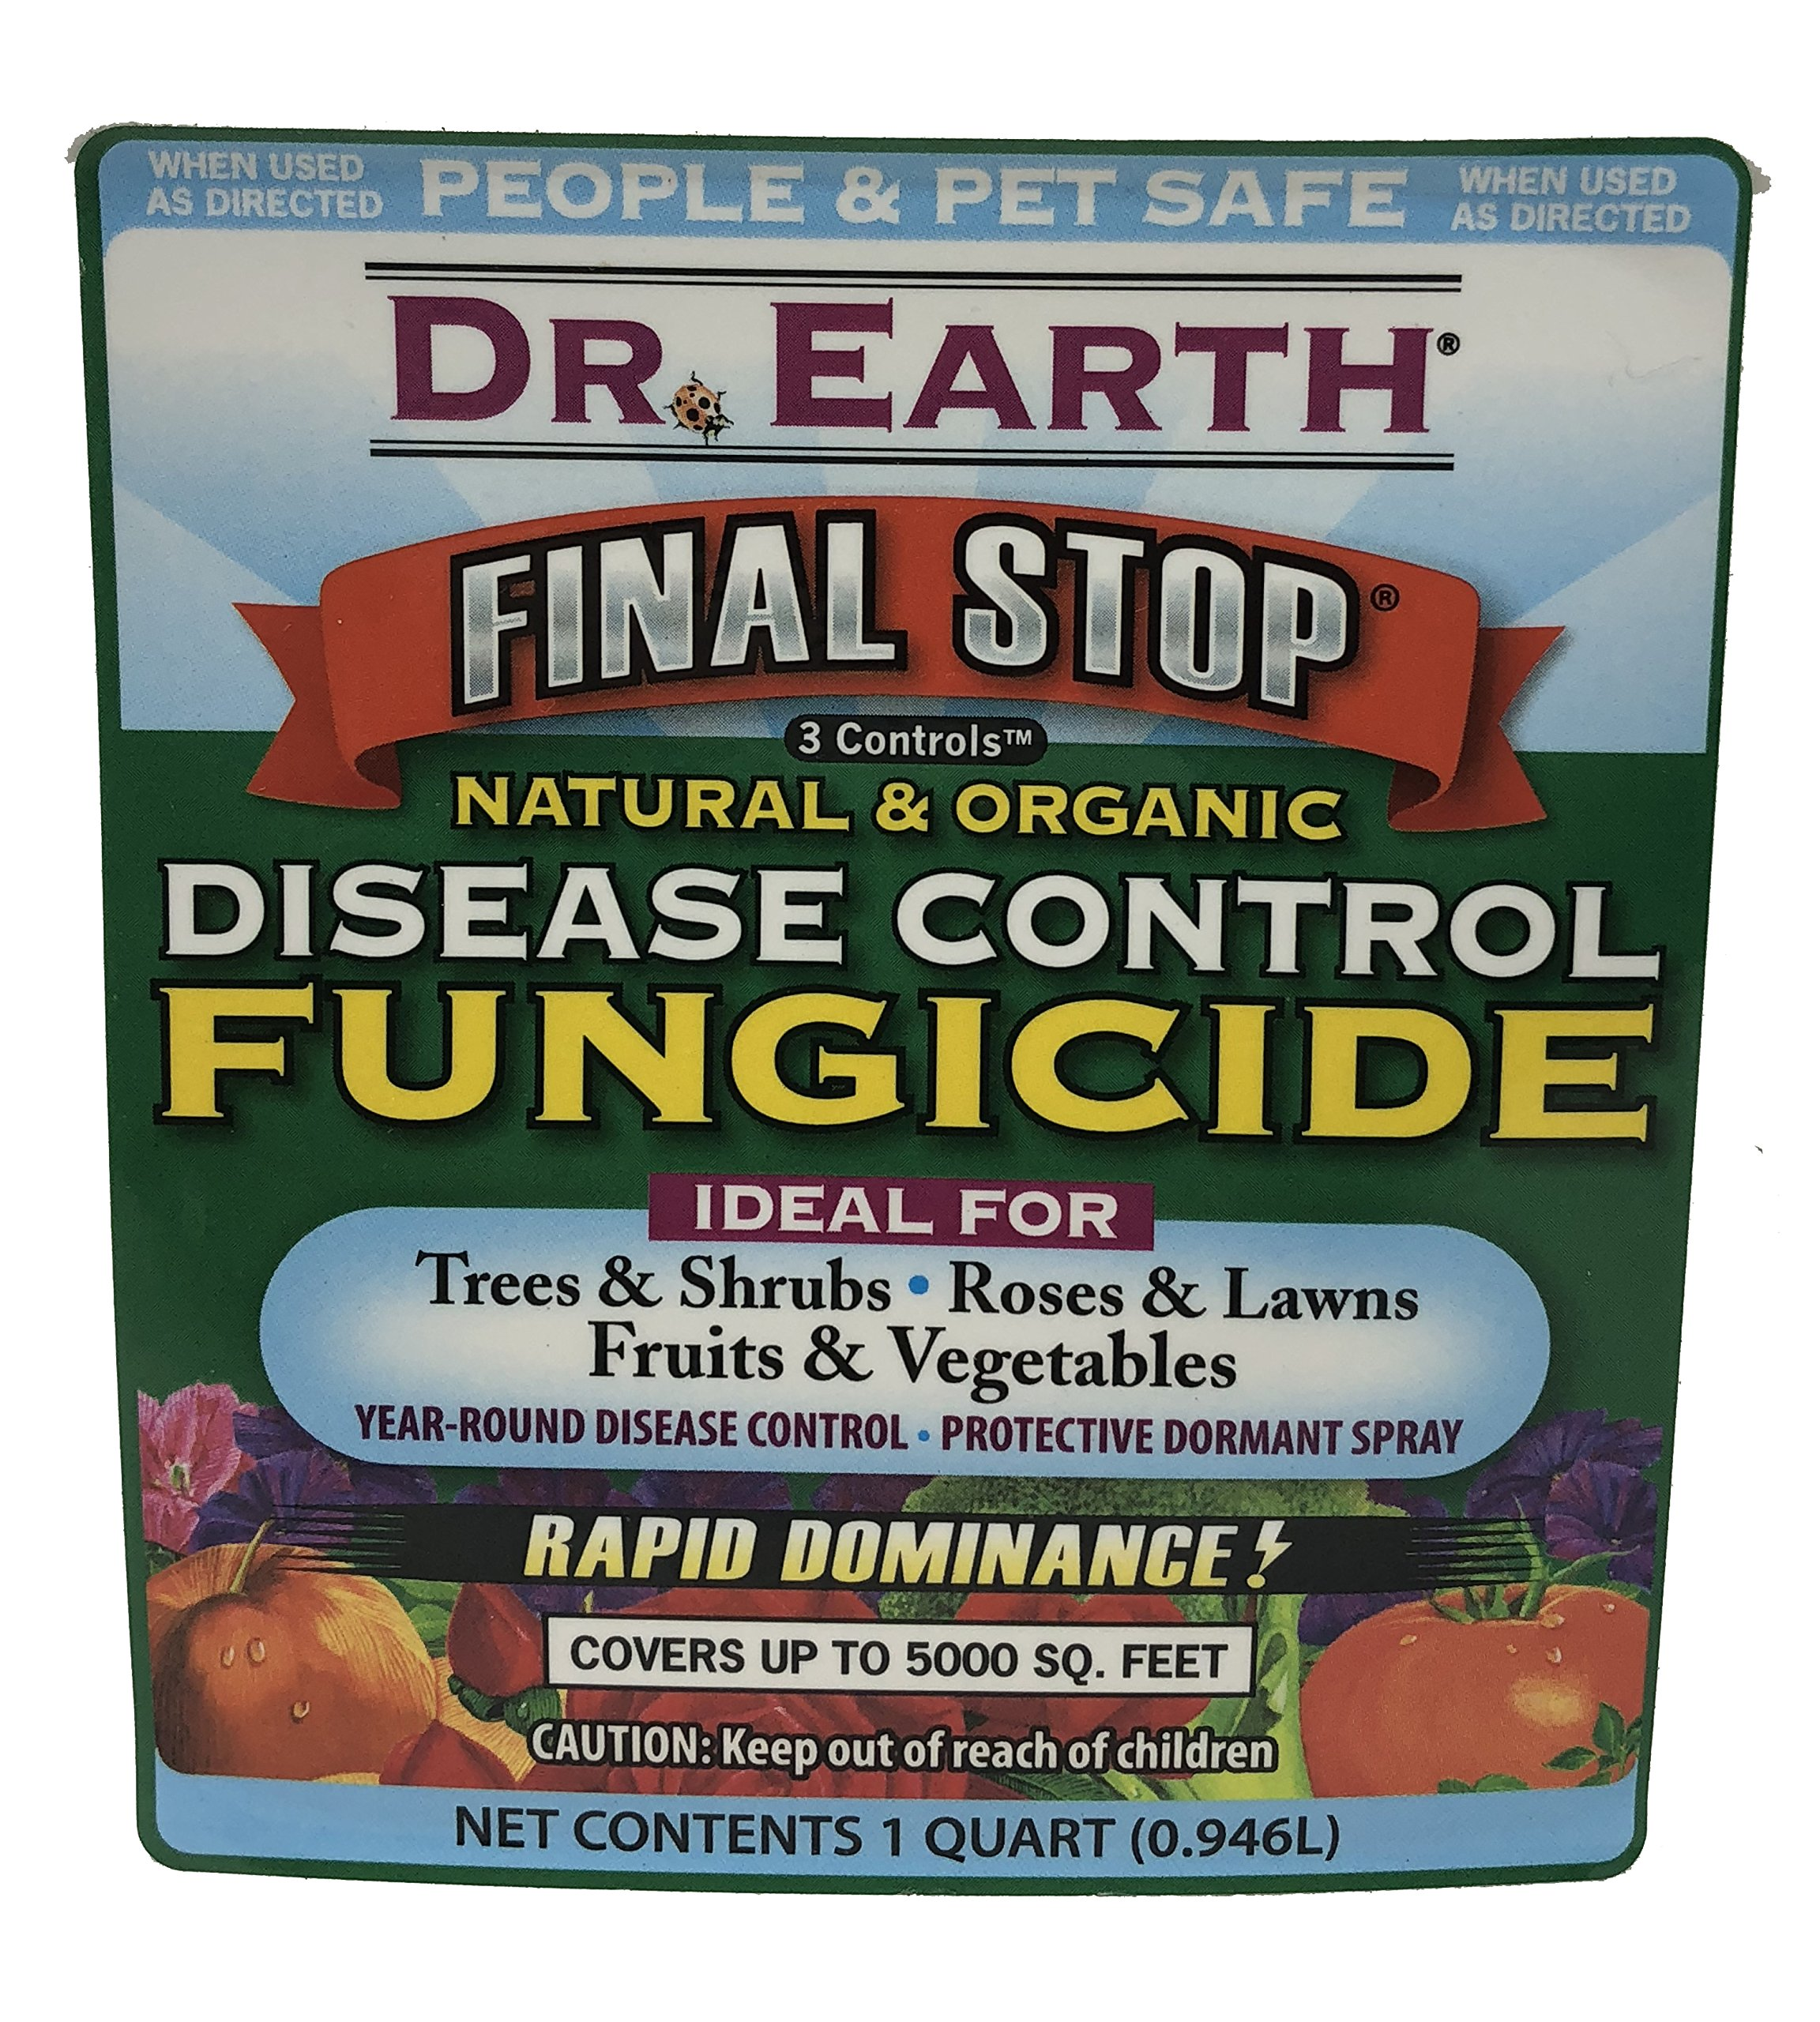 Natural and Organic Ready-to-Spray Disease Control Fungicide by Dr. Earth   32 Ounce   Ideal for Lawn Garden Tree Shrub Roses Fruit Vegetable by Organic Lawn Fertilizer By Dr Earth (Image #3)